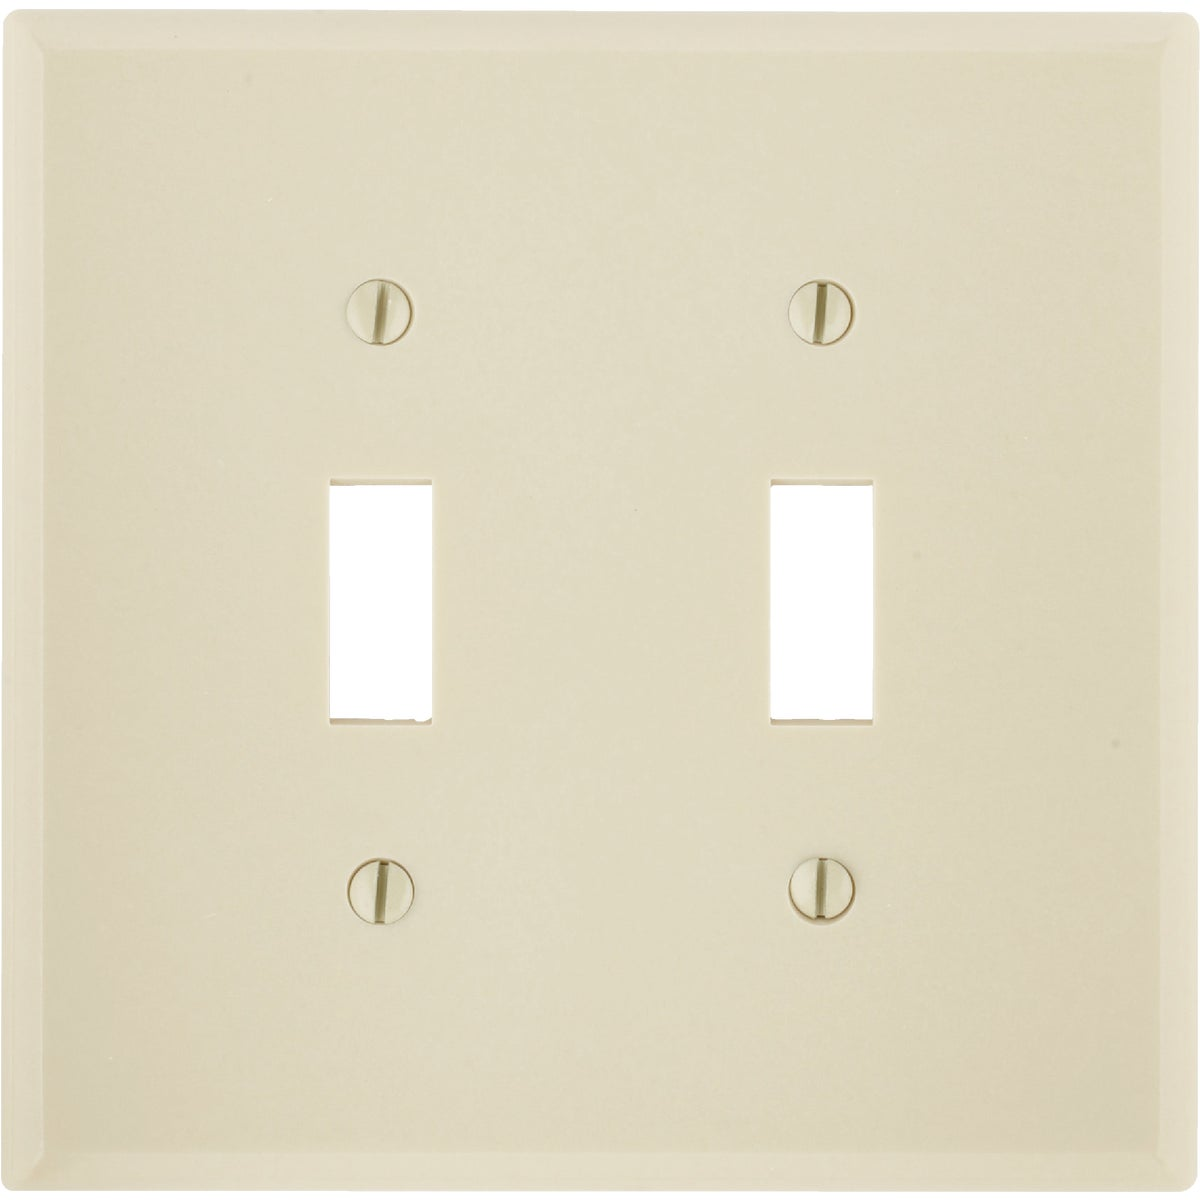 IV 2-TOGGLE WALL PLATE - 86109 by Leviton Mfg Co